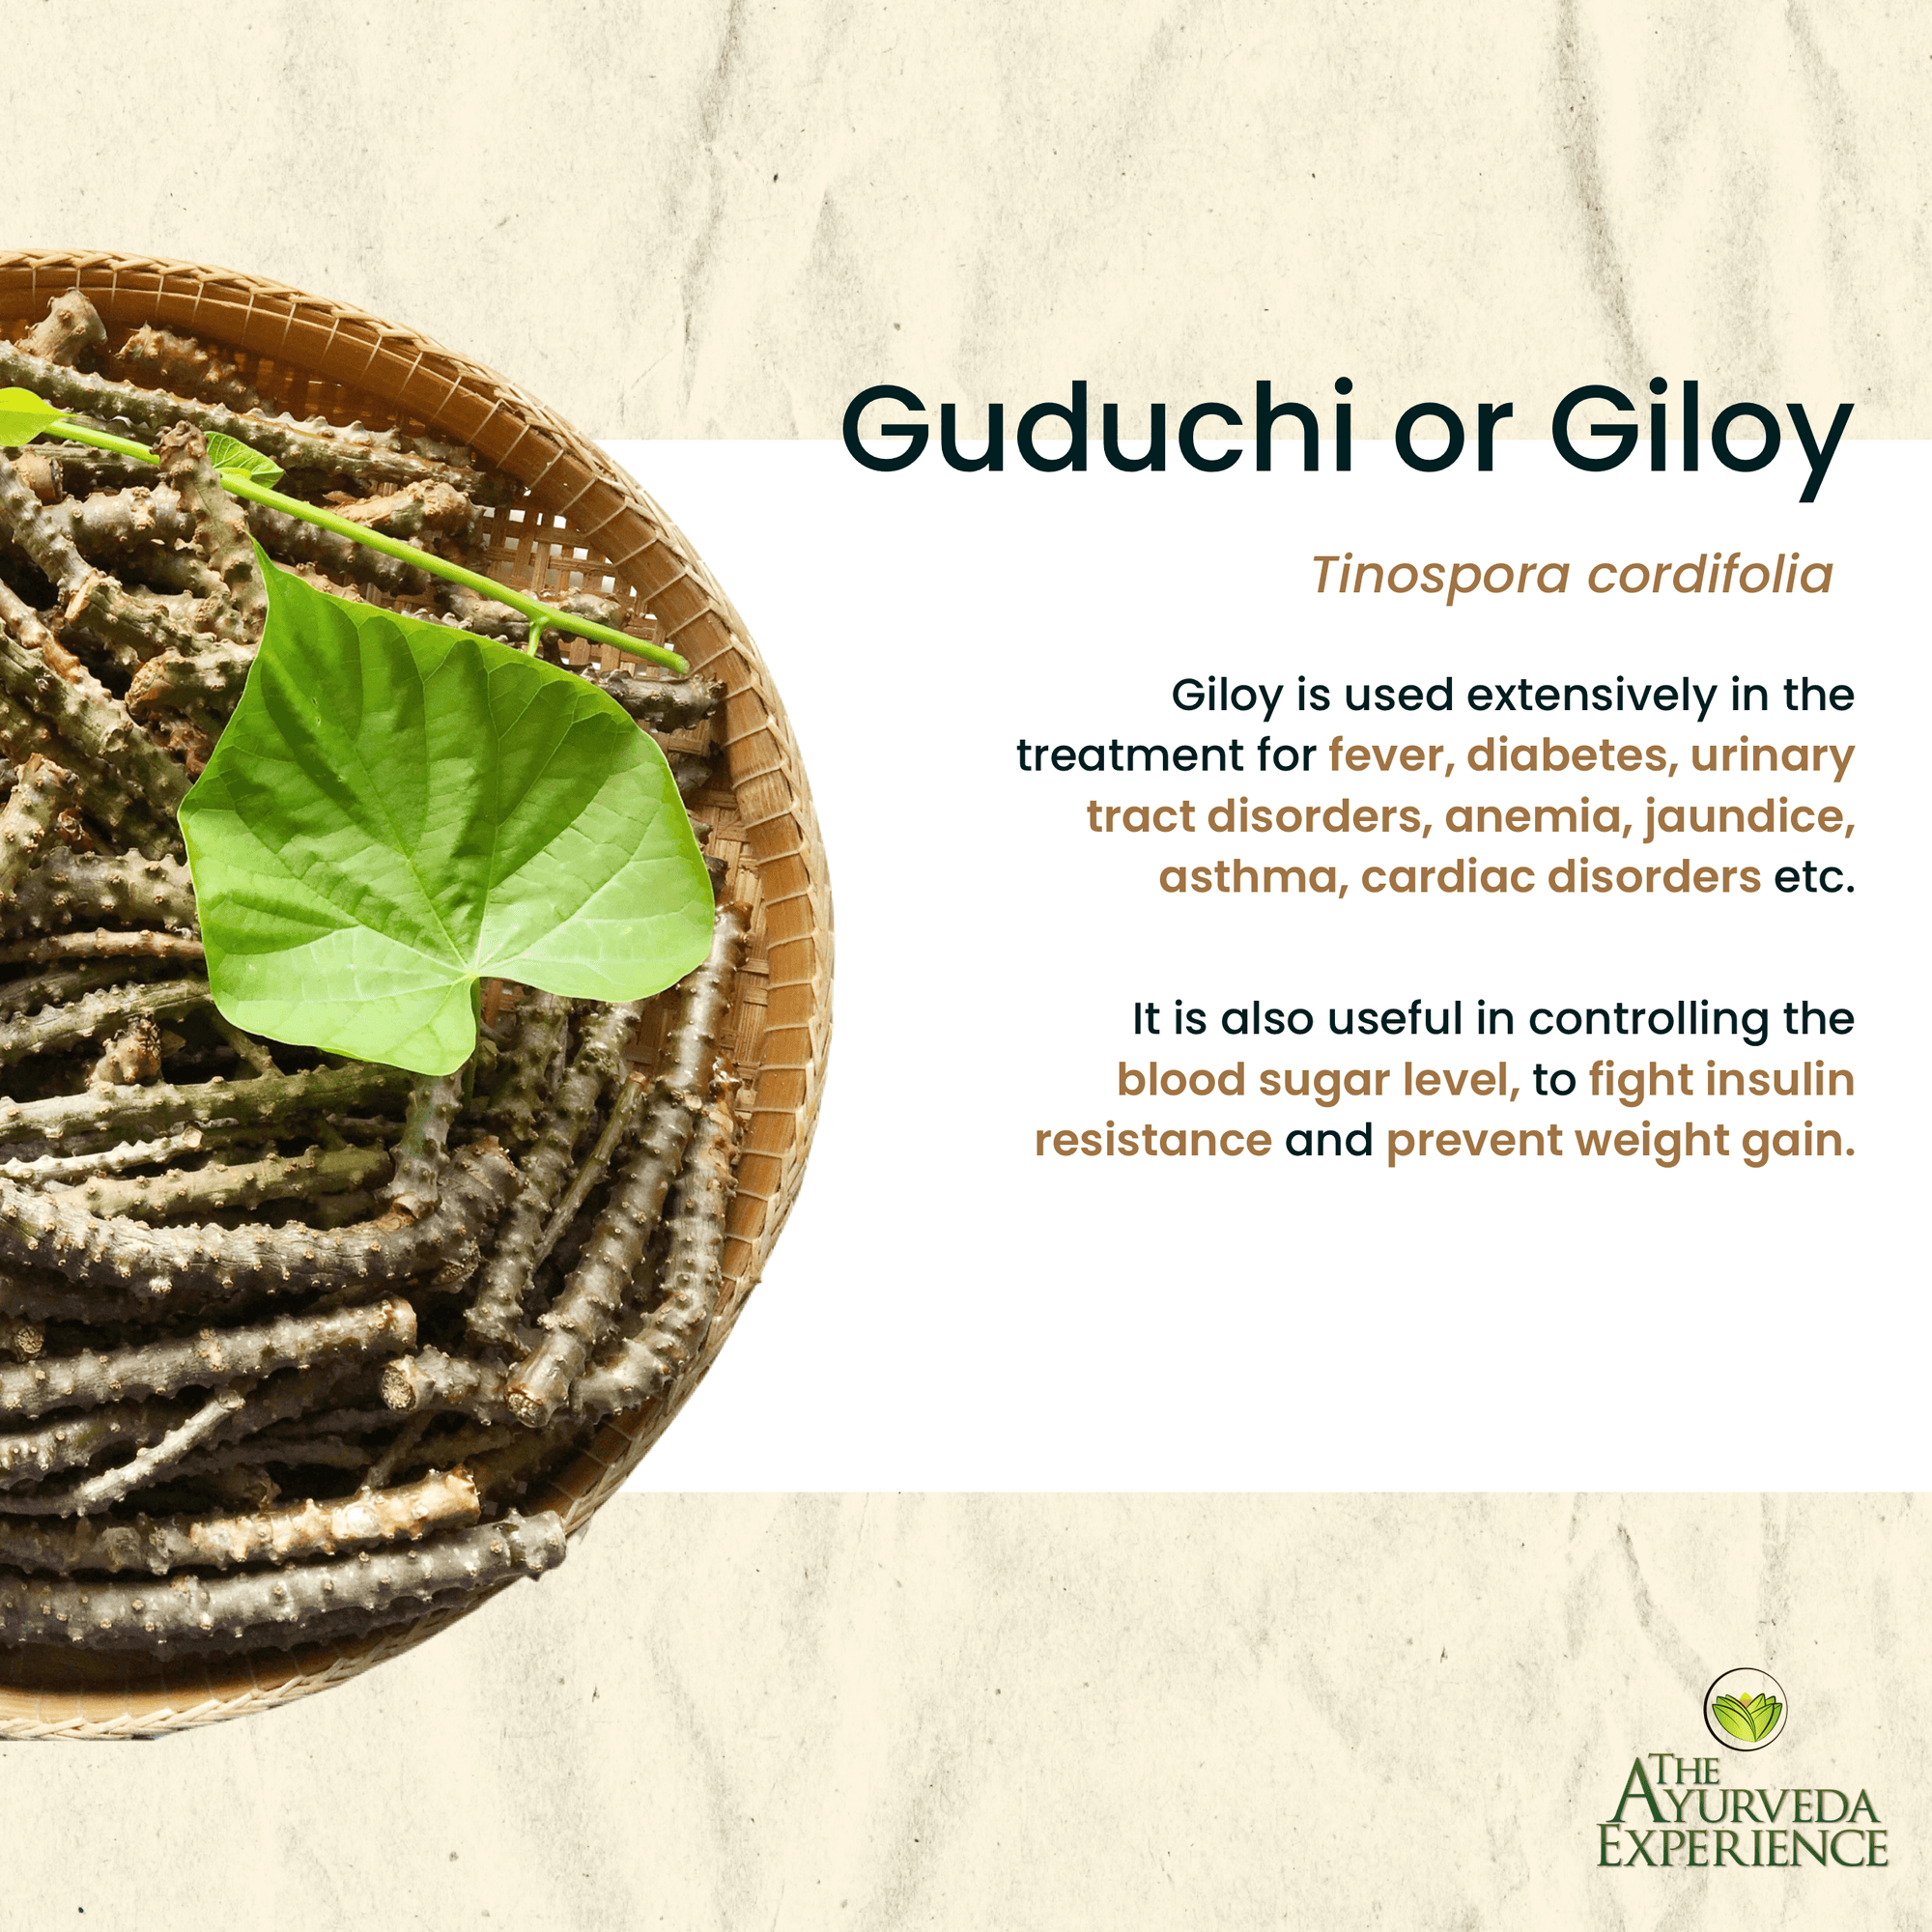 All About Guduchi